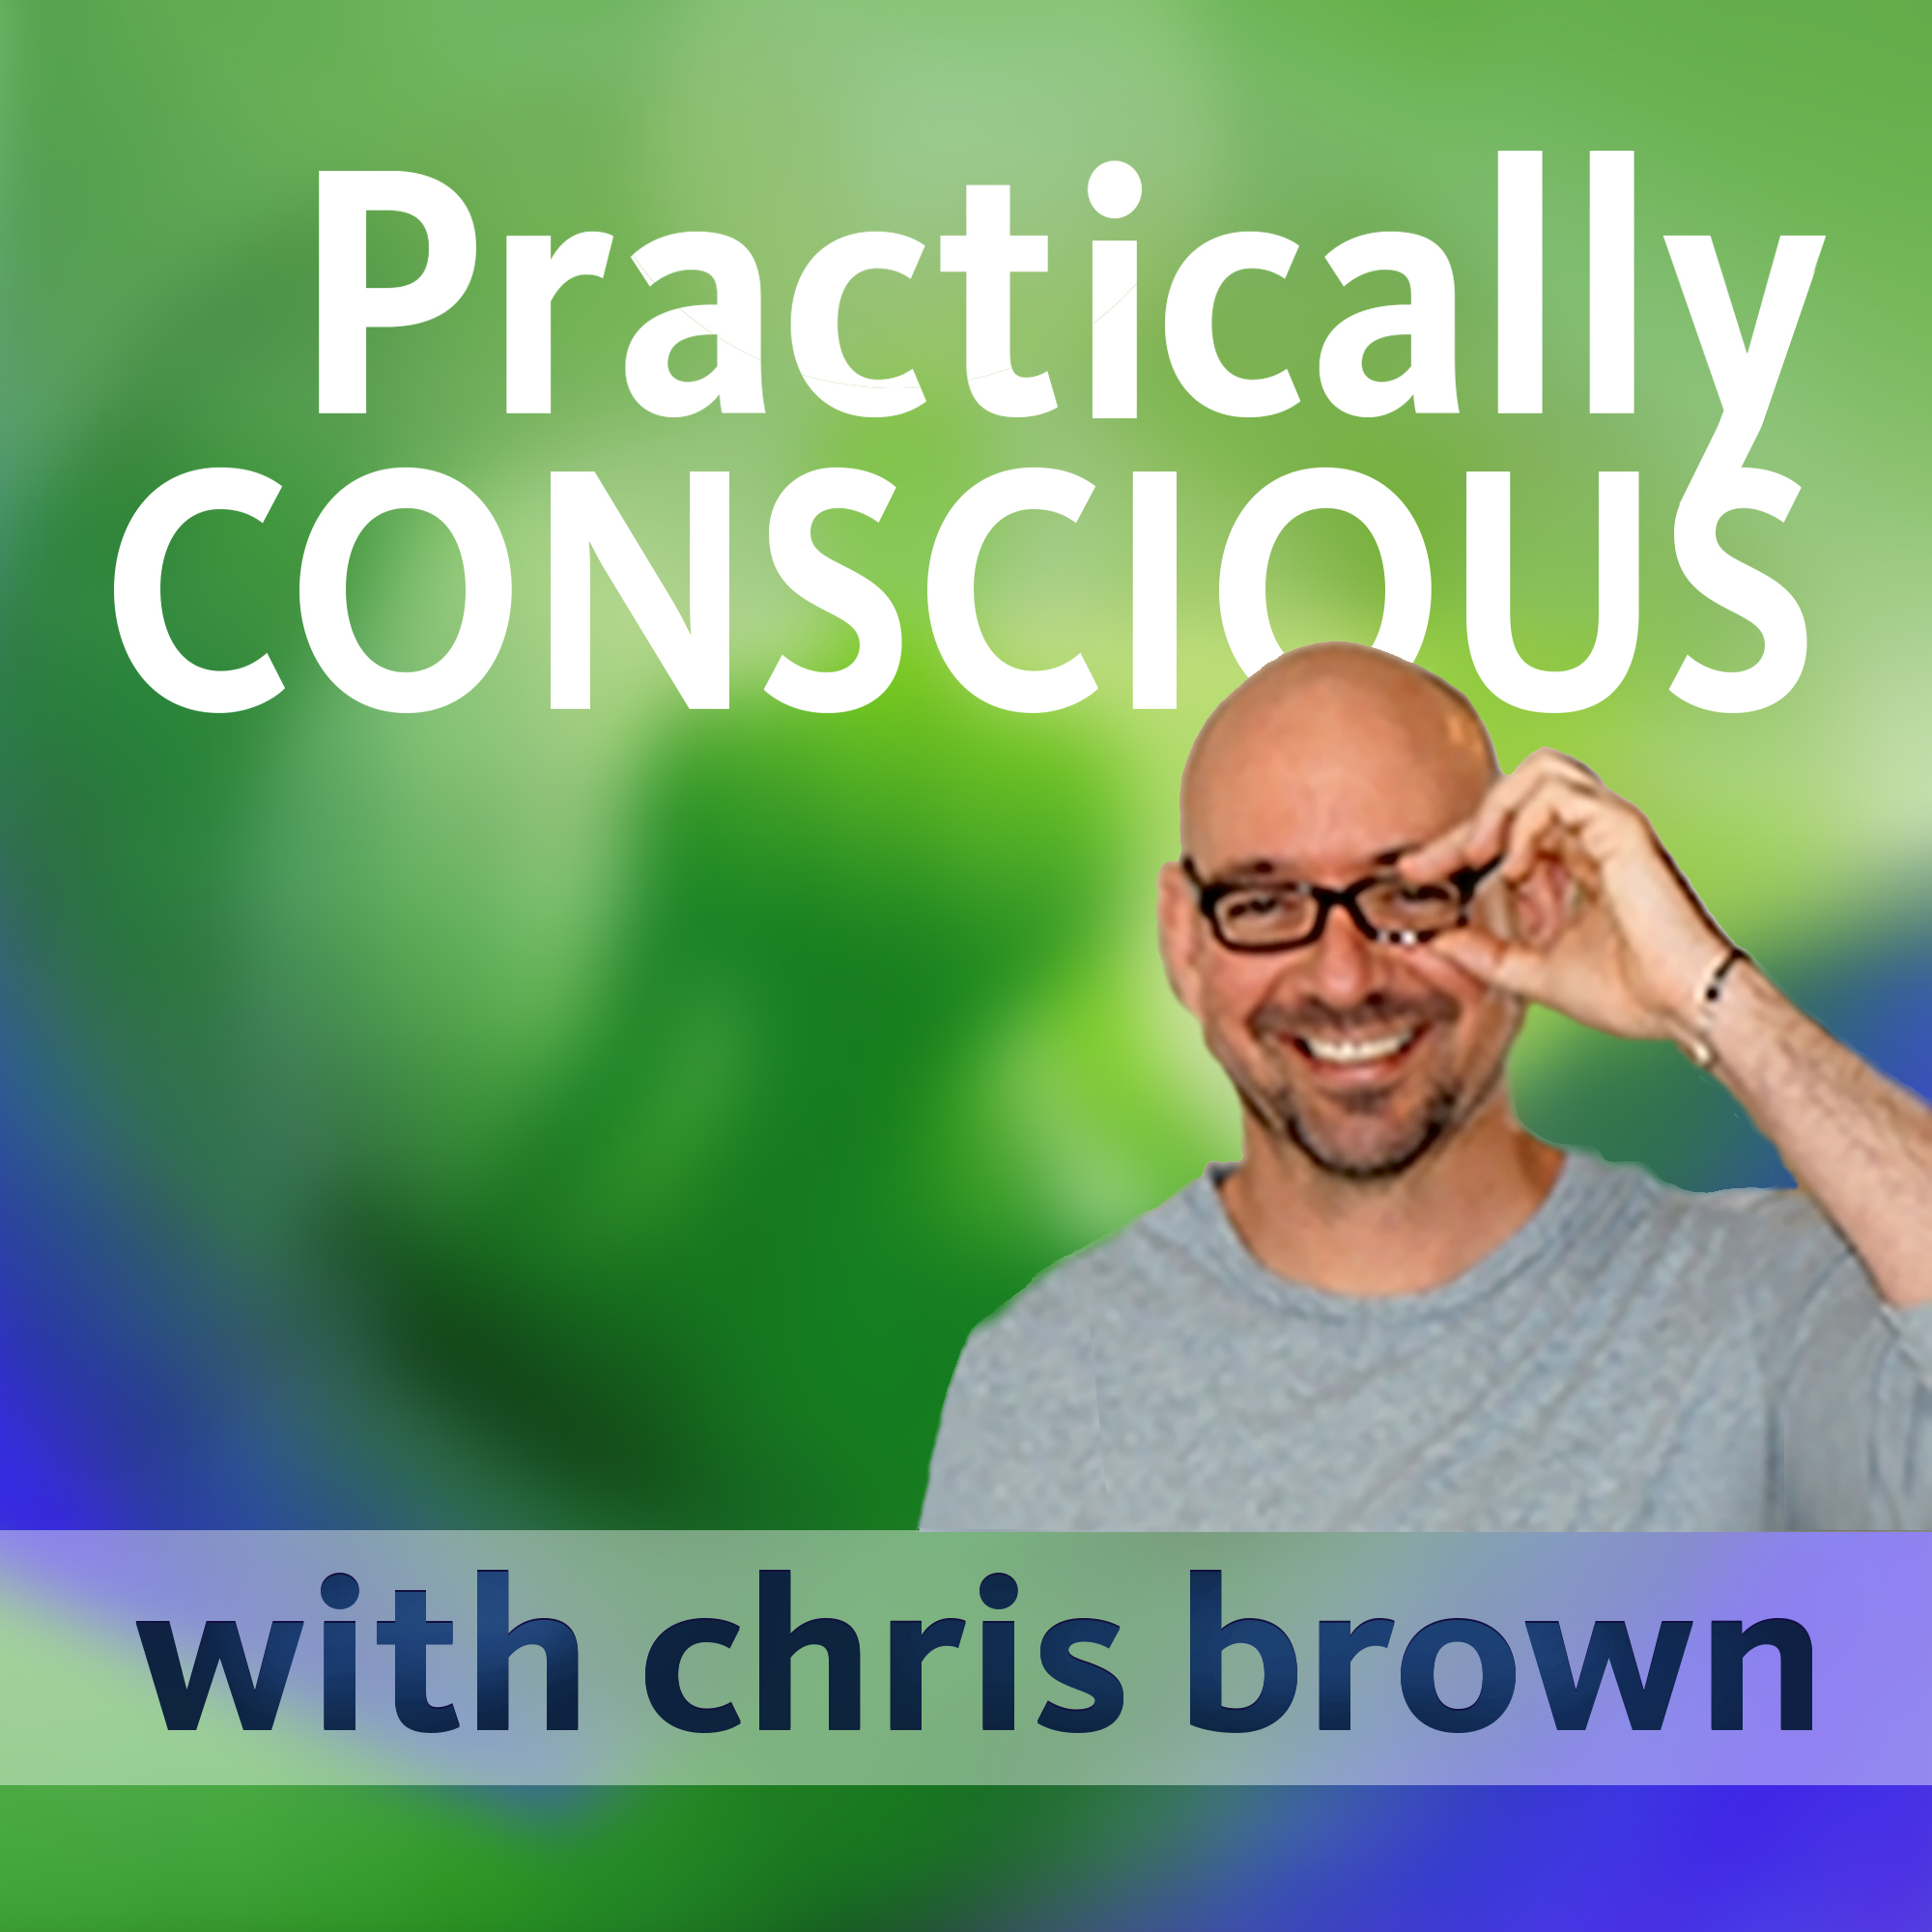 Practically Conscious with Chris Brown - Conversations About Yoga, Meditation, and Conscious Living